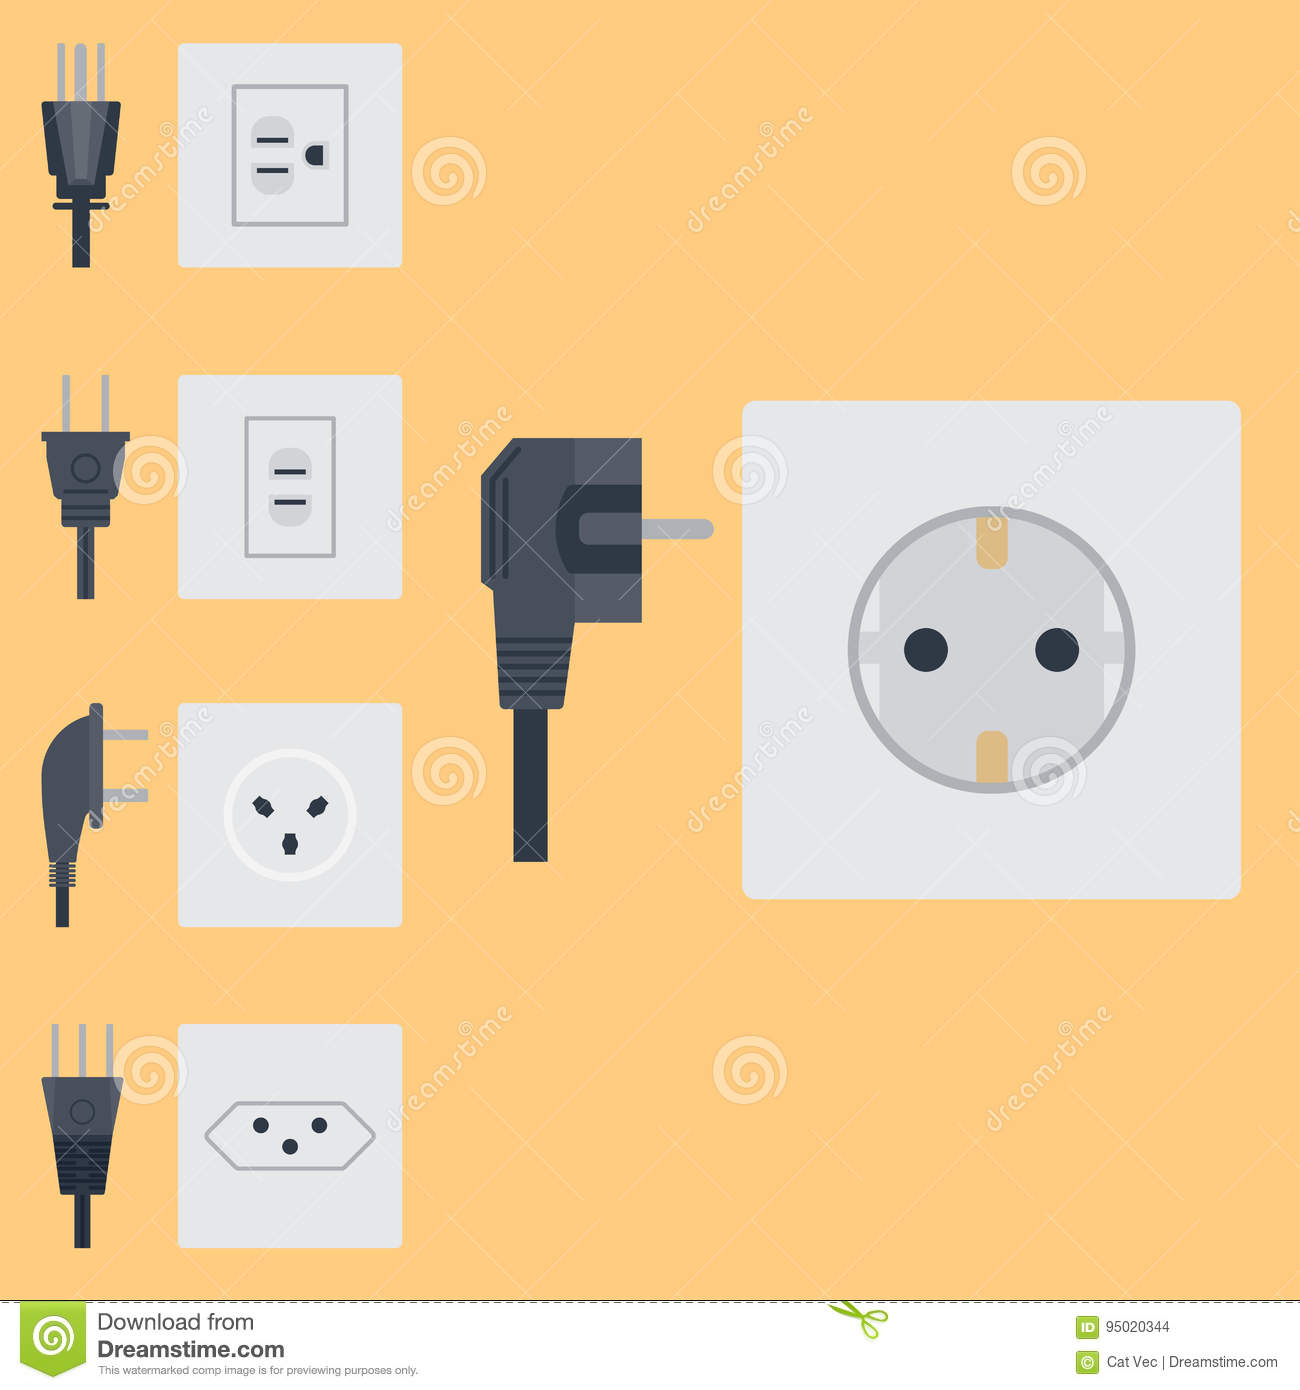 Electric Outlet Vector Illustration Energy Socket Electrical ... on installing a new electrical outlet, basic electrical wiring, open neutral in electrical wiring, electrical plug, electrical generator, electrical wall outlets, new electrical wiring, circuit breaker wiring, electrical wiring installation, electrical store, electrical socket, roughing in electrical wiring, electrical switches wiring, electrical receptacles, scary electrical wiring, electrical panel wiring, exterior electrical wiring, electrical muscle stimulator, electrical safety, replacing electrical outlets, electrical suppliers, electrical estimating, electrical troubleshooting, electrical tests, electrical switch wiring, electrical wiring diagram, electrical install, electrical wiring in north america, electrical work, home wiring, electrical stimulator, electrical standards, outlet switch, british electrical wiring, electrical retail, electrical motor, residential electrical wiring, bad electrical wiring, electrical lighting wiring,